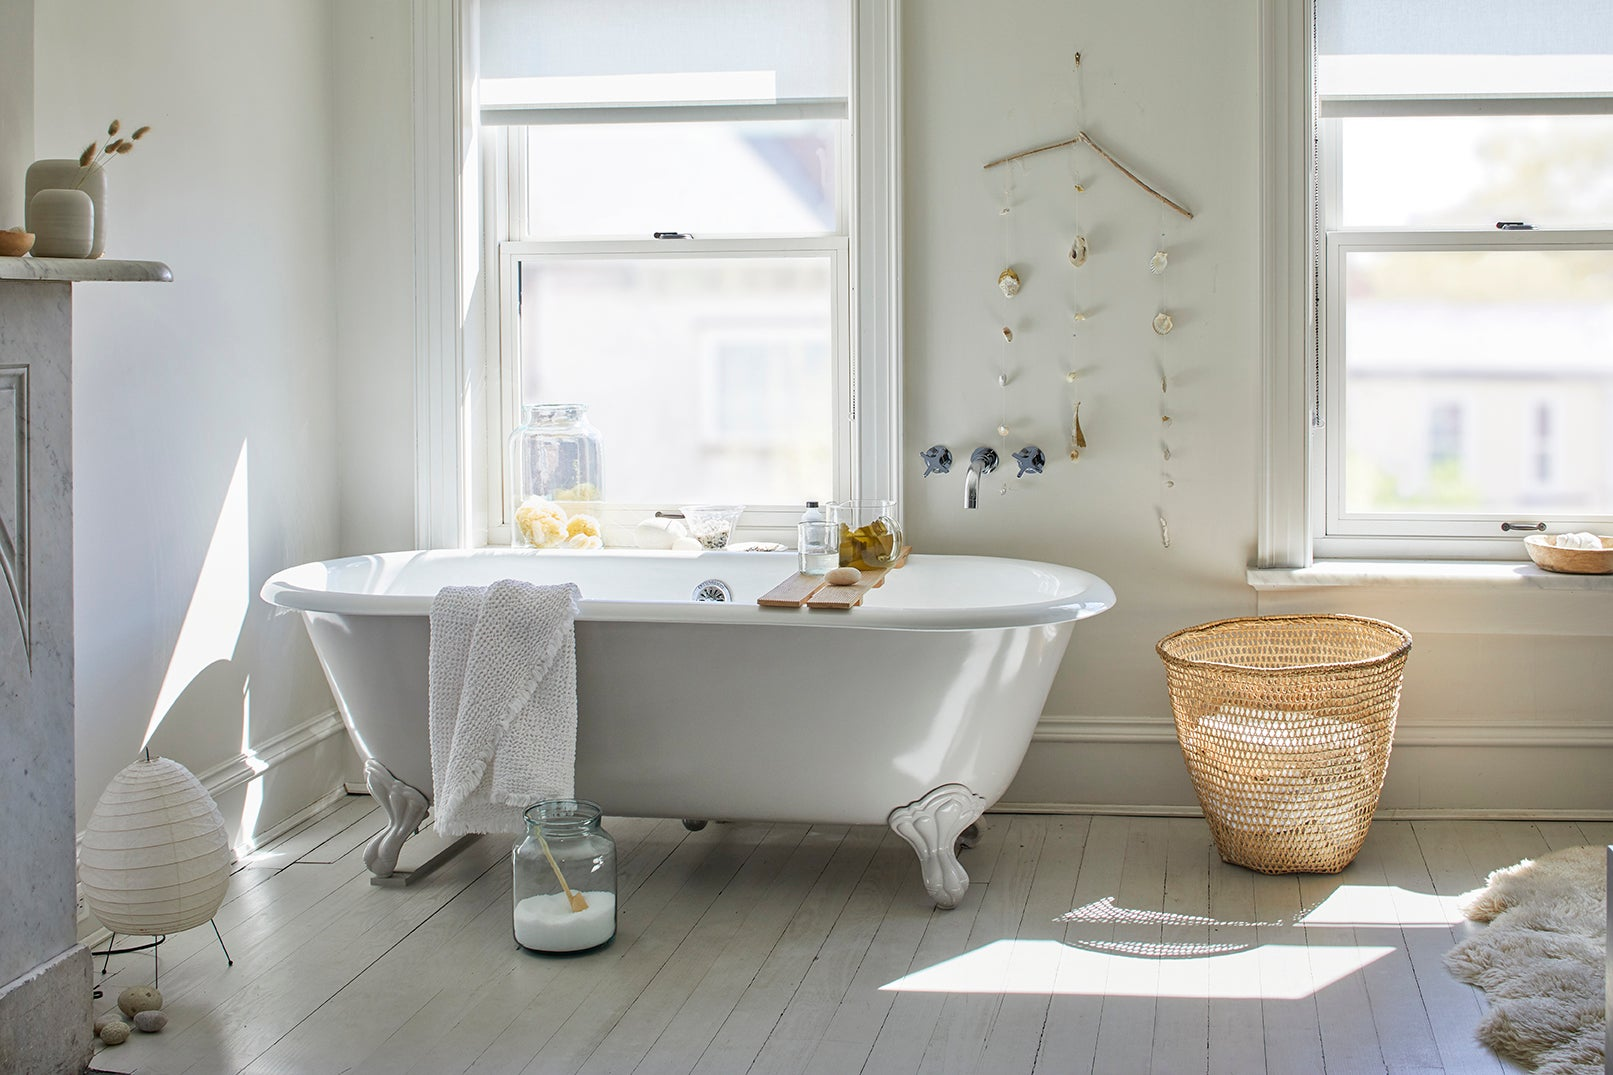 tub in a white bathroom